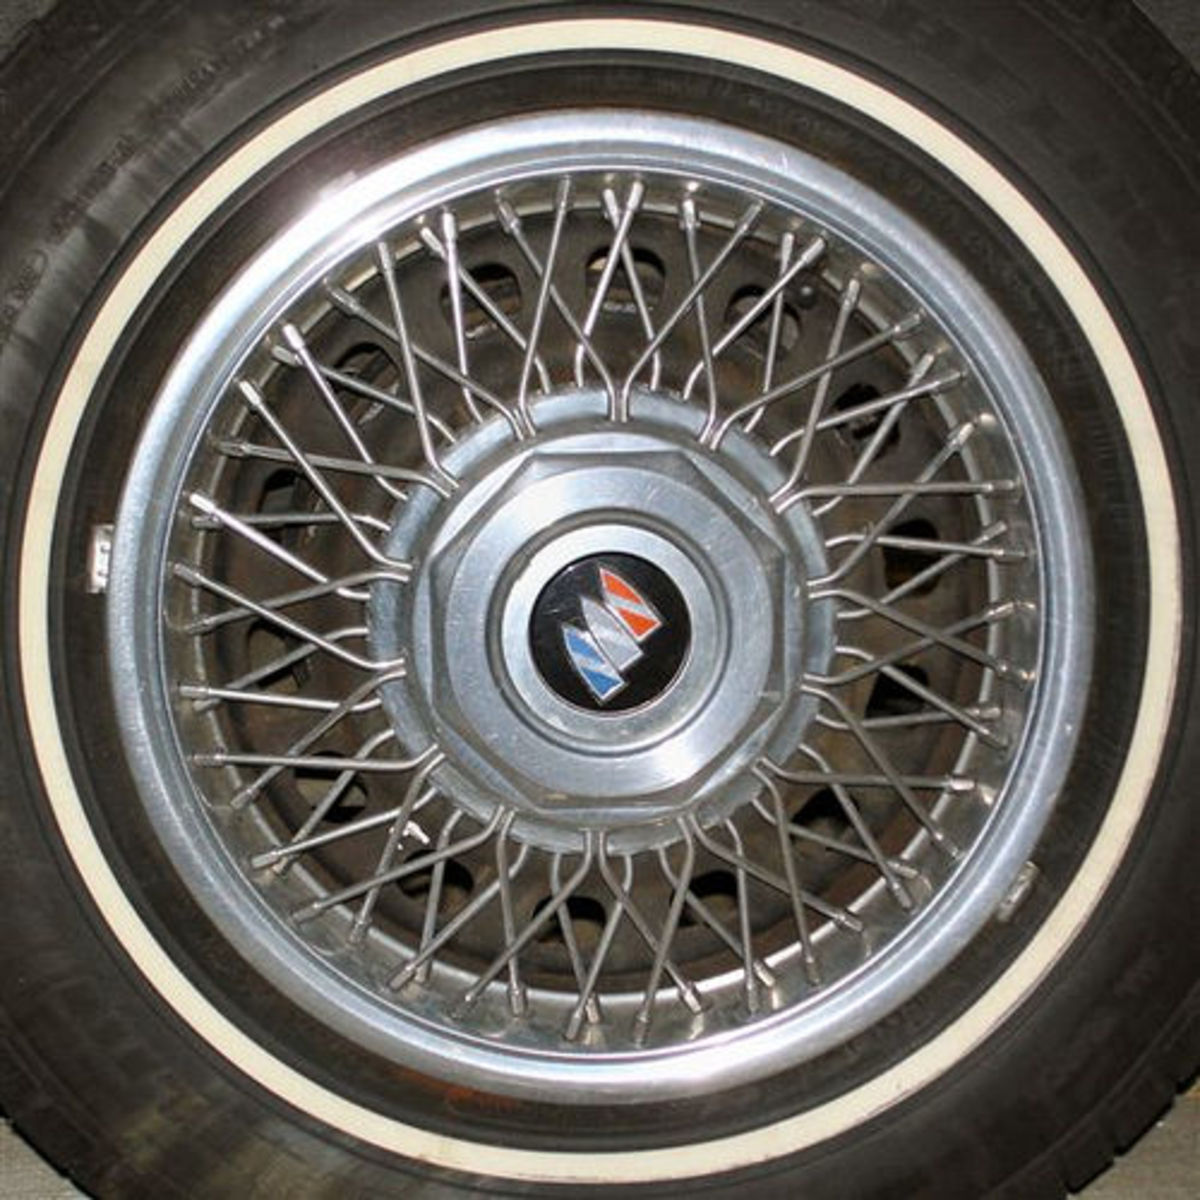 Squared Circle - Car Tire Rim-2 (Photo courtesy by thomwatson from Flickr)